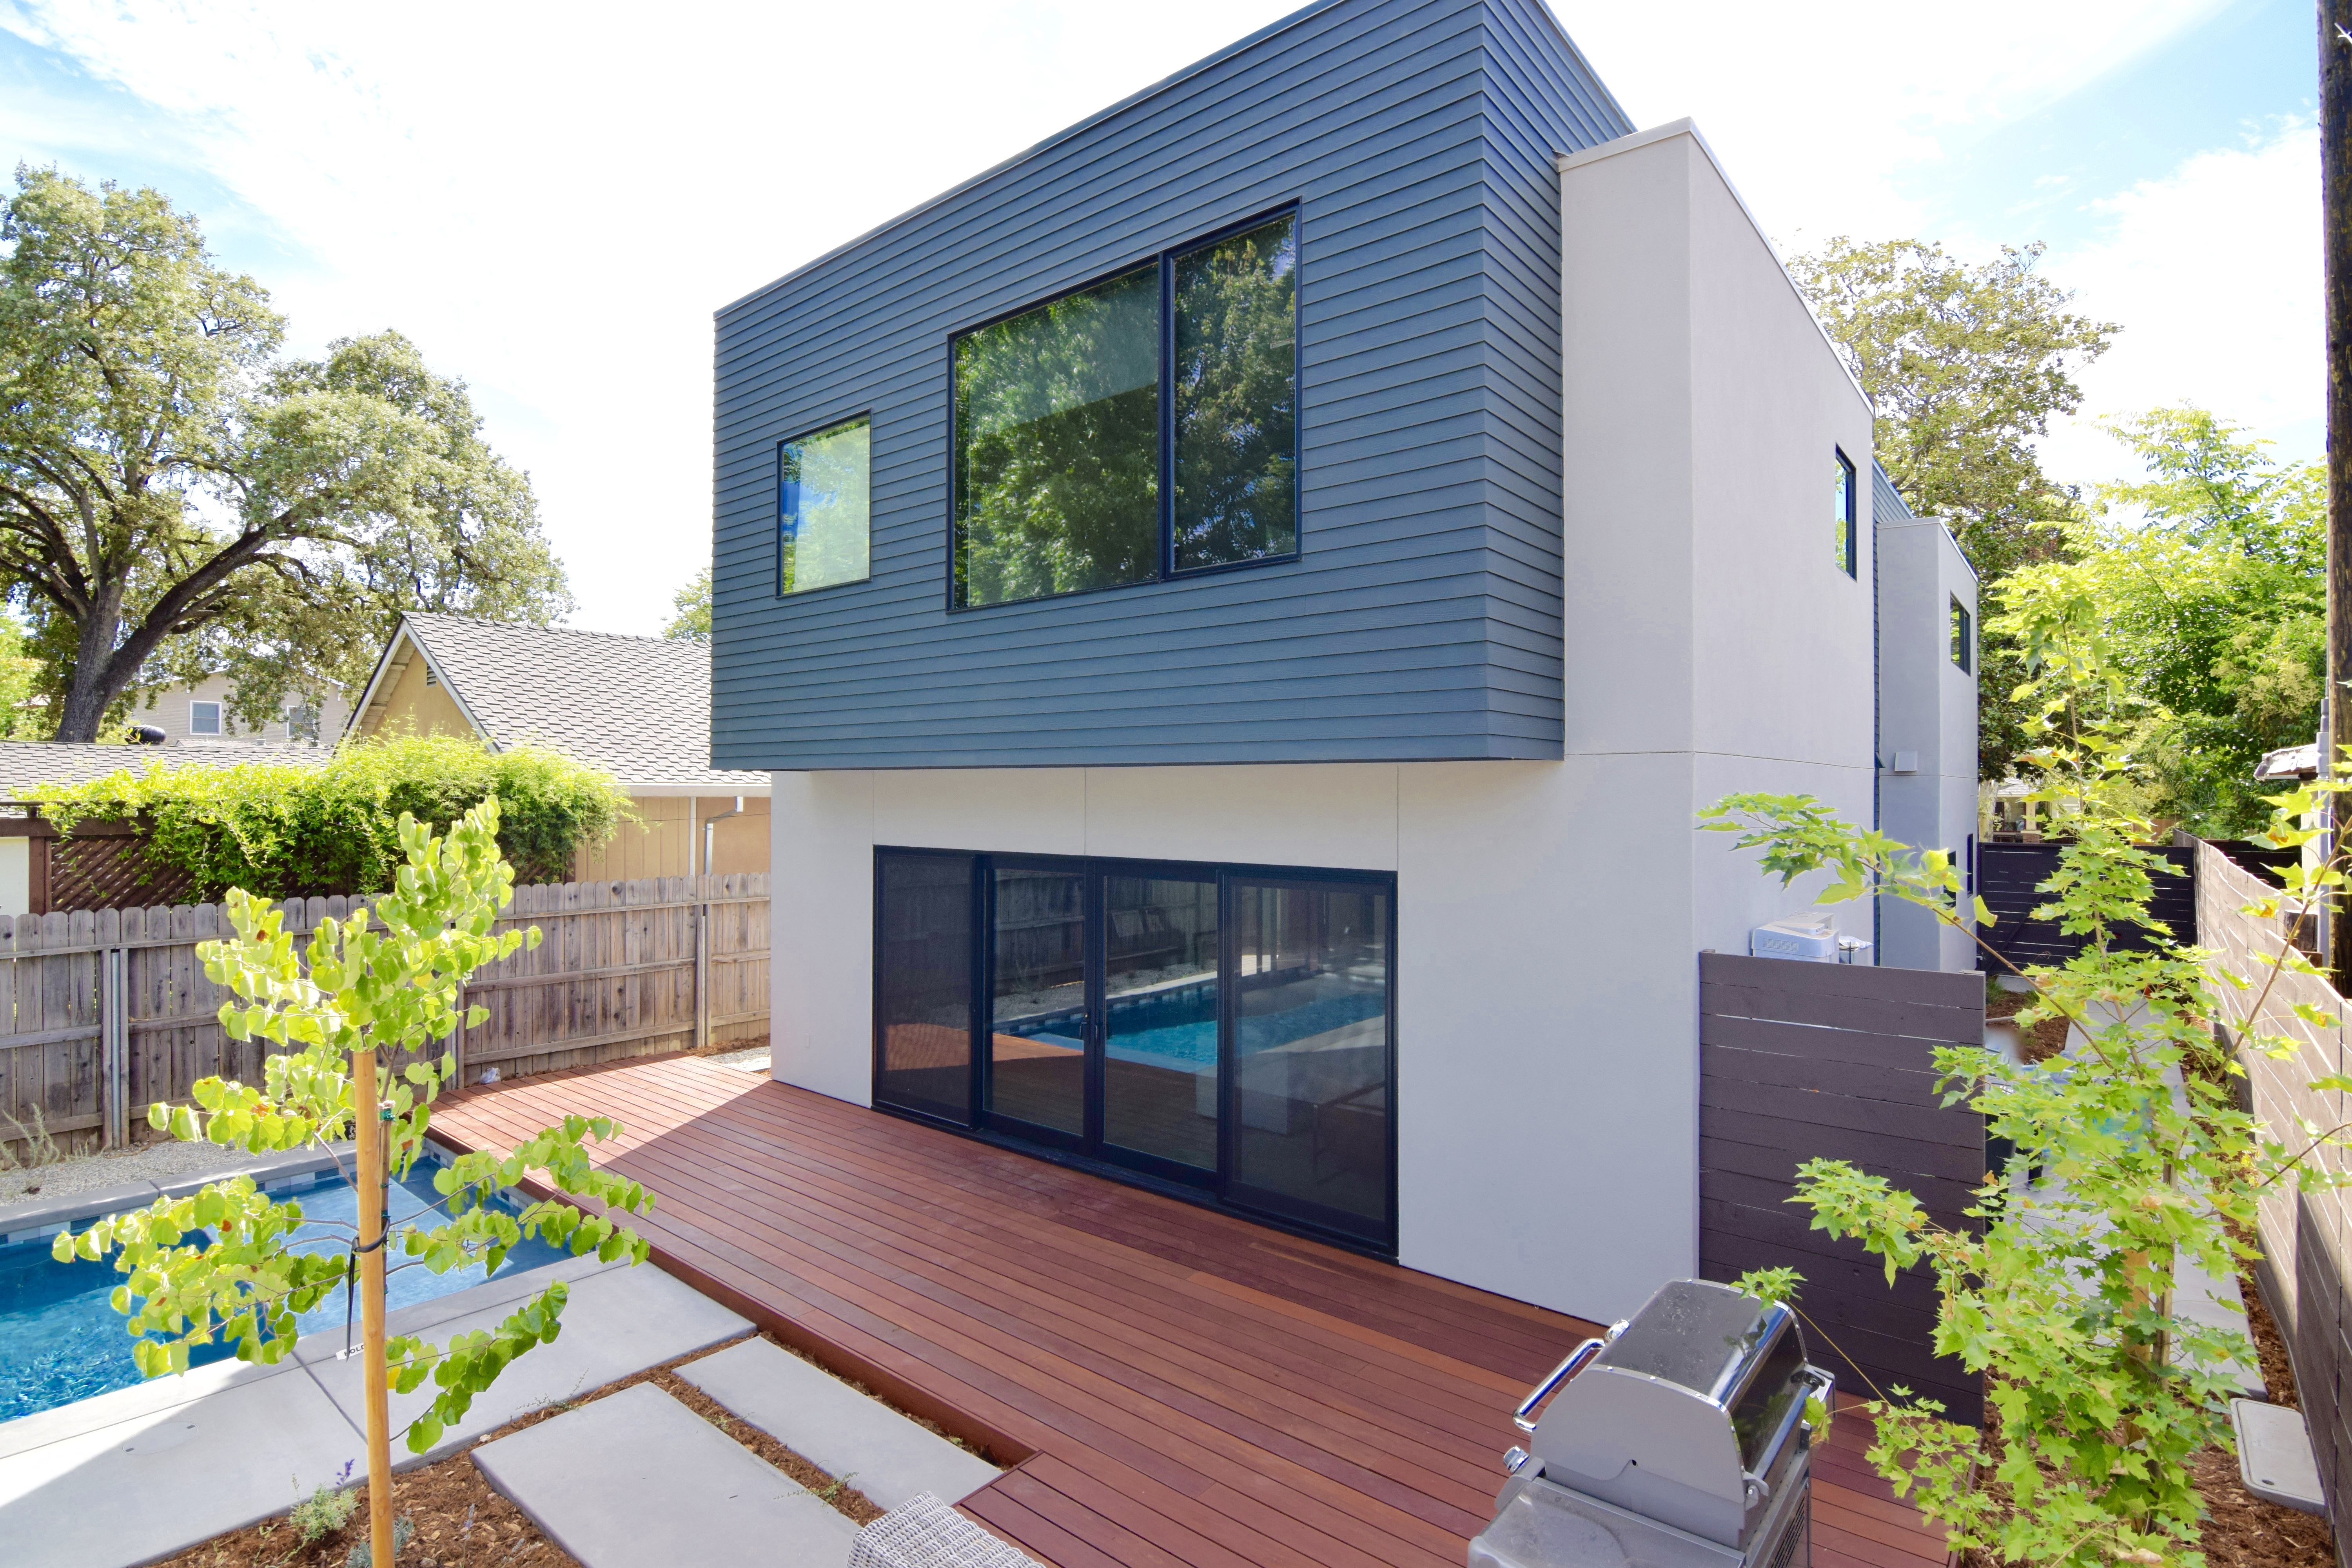 Projects | Henry + Associates Architects